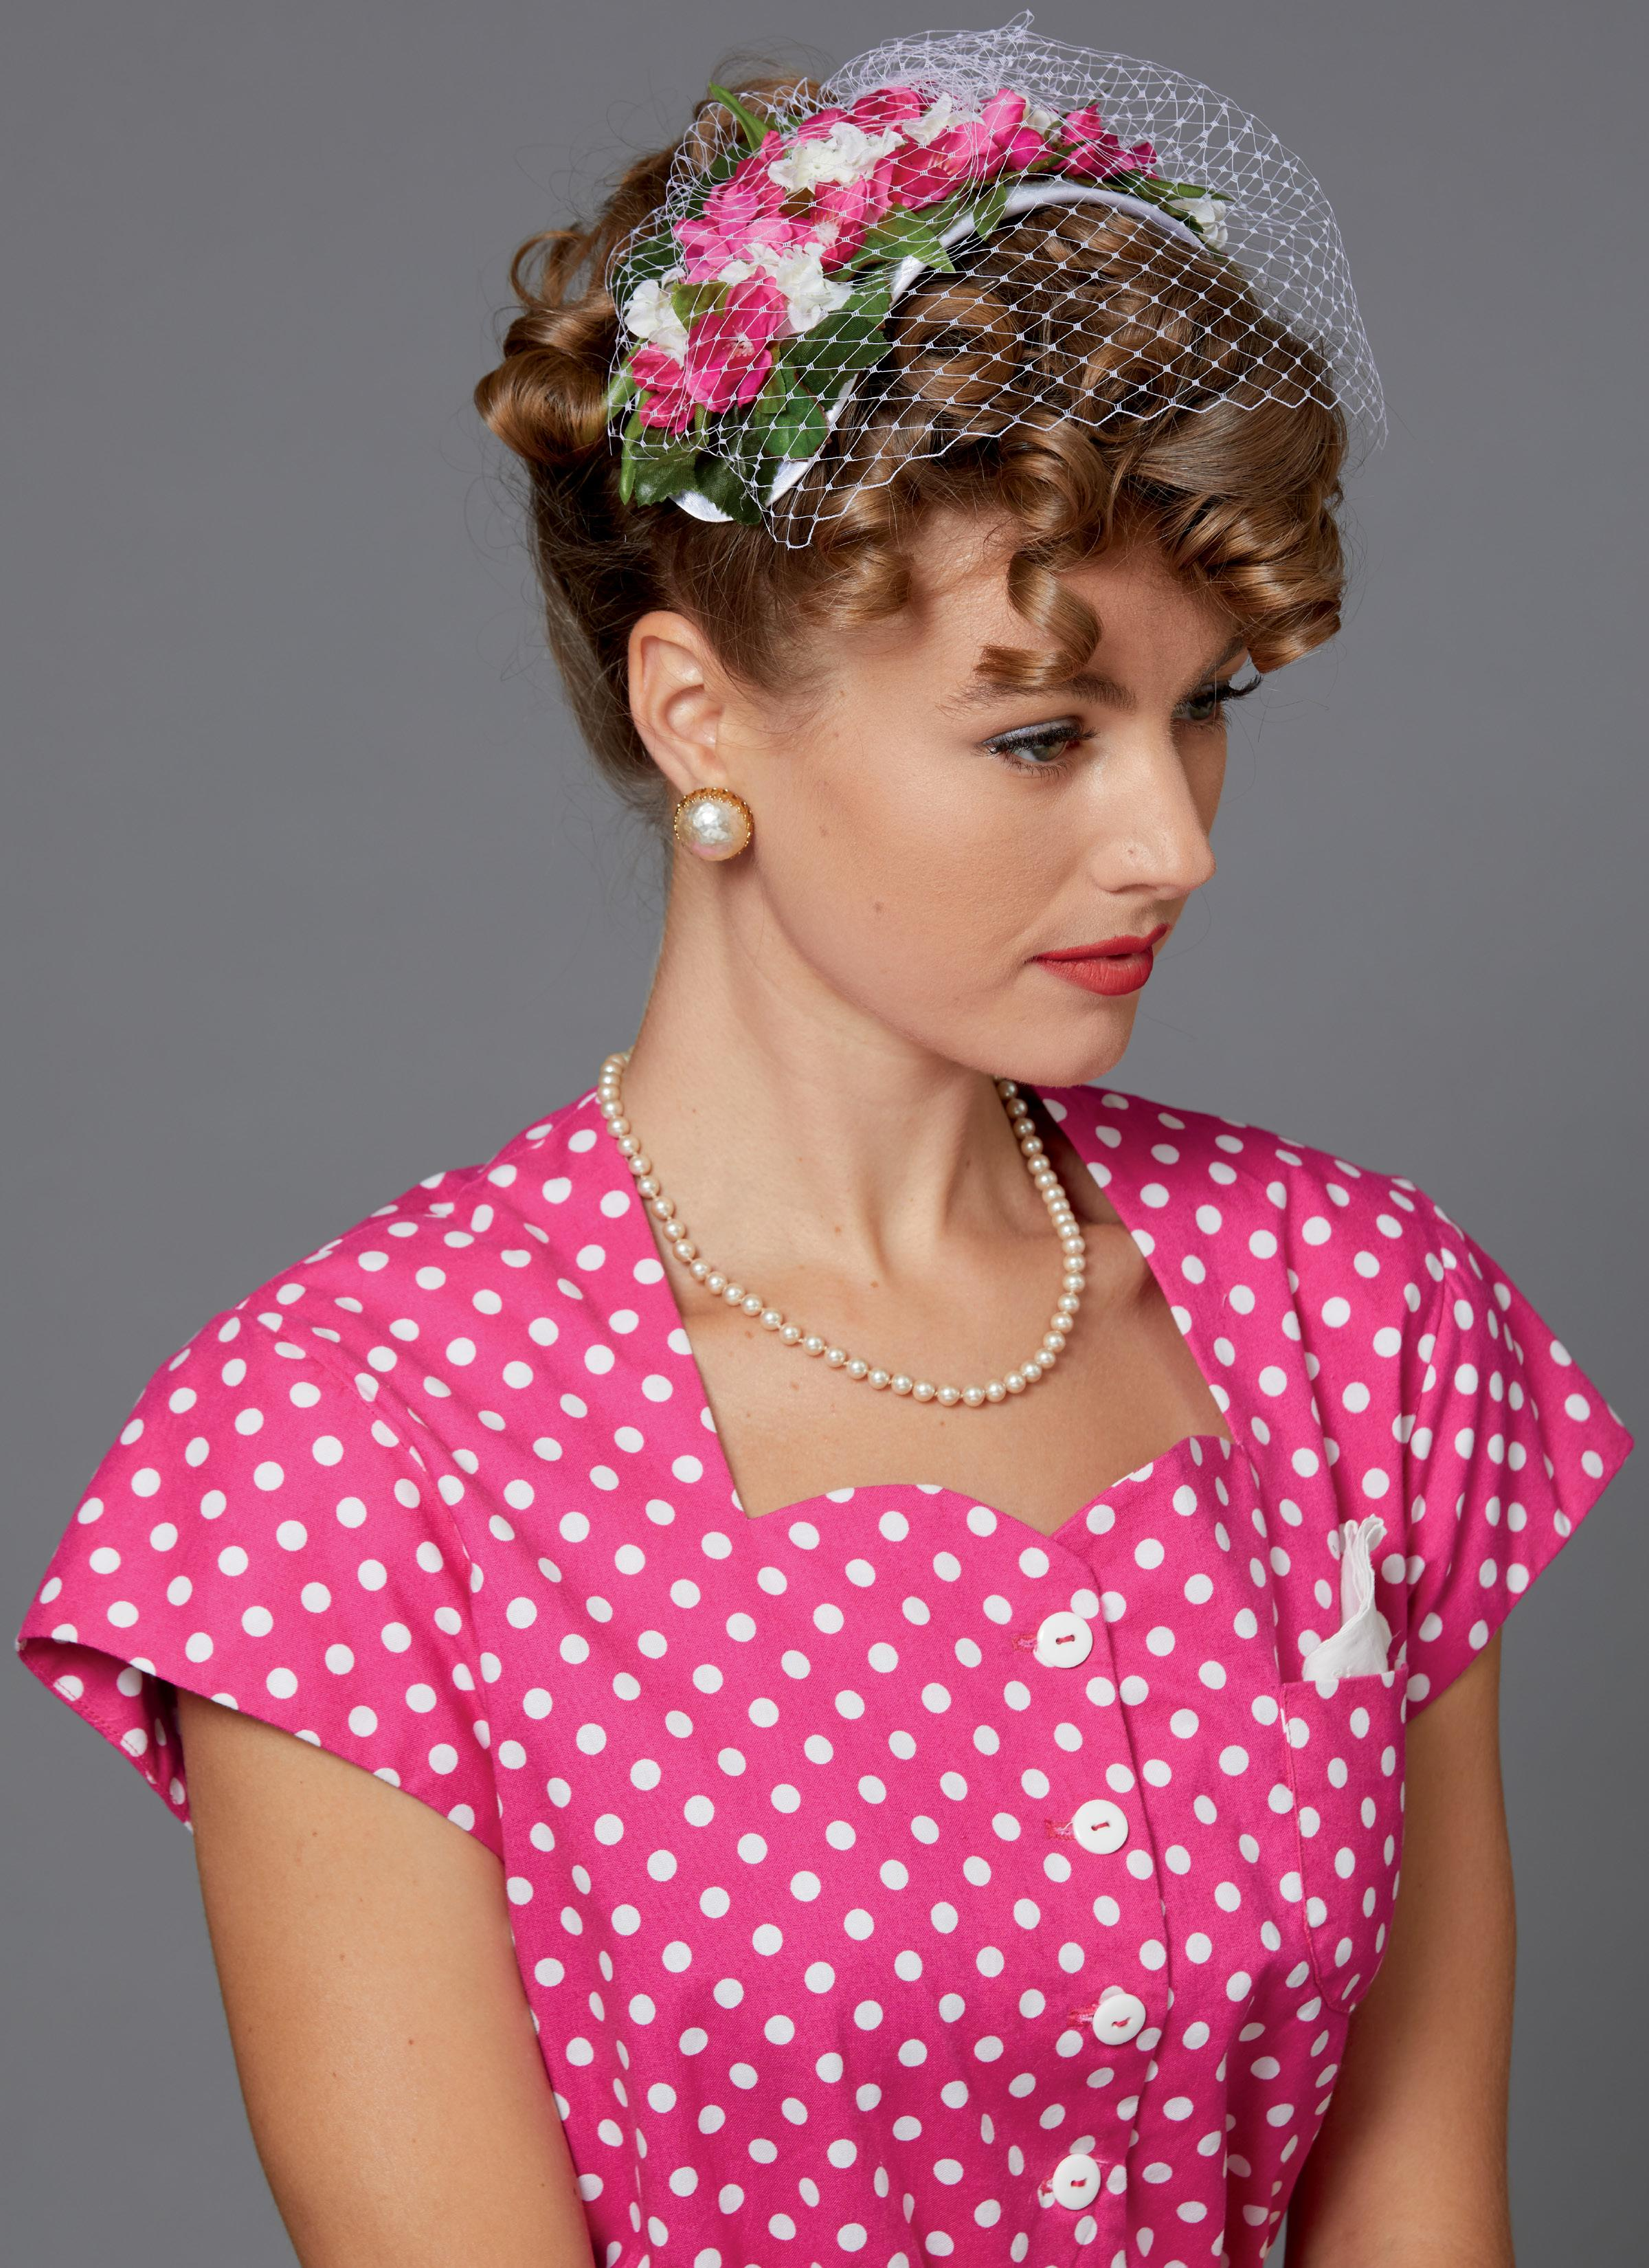 Butterick B6672 Misses' Costume and Hat